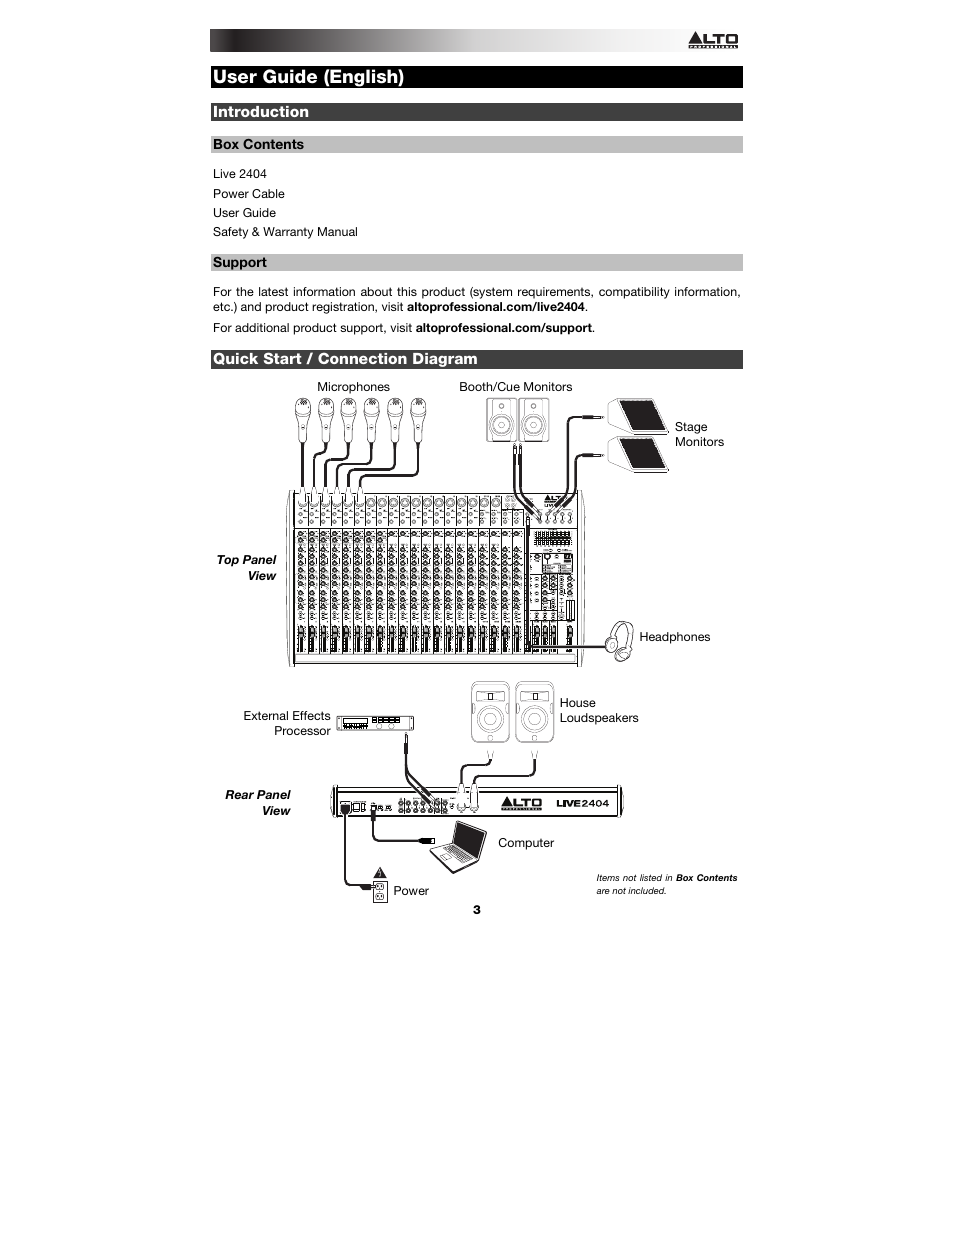 1 Introduction To Premises Cabling System Manual Guide